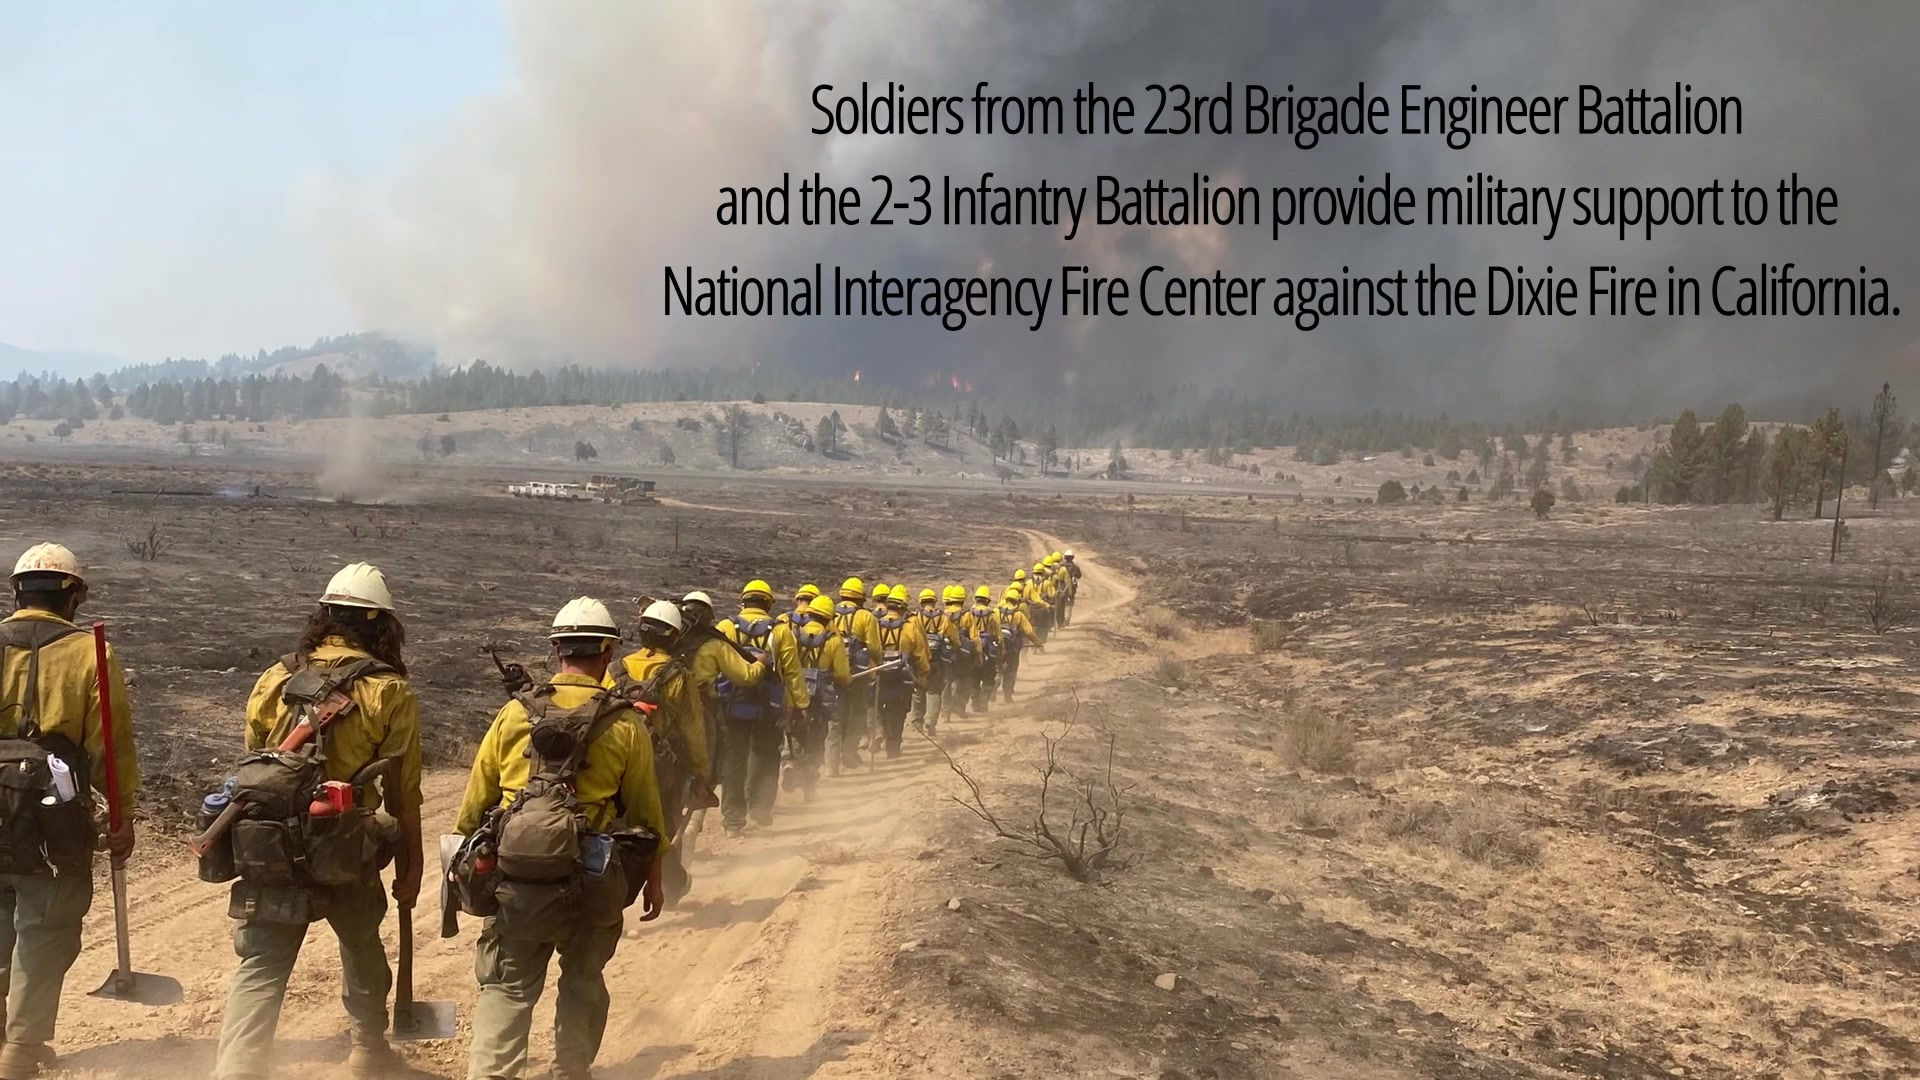 U.S. Army Soldiers from the 23rd Brigade Engineer Battalion and 2-3 Infantry Battalion, both under the 1-2 Stryker Brigade Combat Team and assigned to Joint Base Lewis-McChord, Washington, deploy in support of the Department of Defense wildland firefighting response from Aug. 31 through Sept. 28, 2021. U.S. Army North, as U.S. Northern Command's Joint Force Land Component Command remains committed to providing flexible DoD support to the National Interagency Fire Center to respond quickly and effectively to assist our local, state, and federal partners in protecting people, property, and public lands.